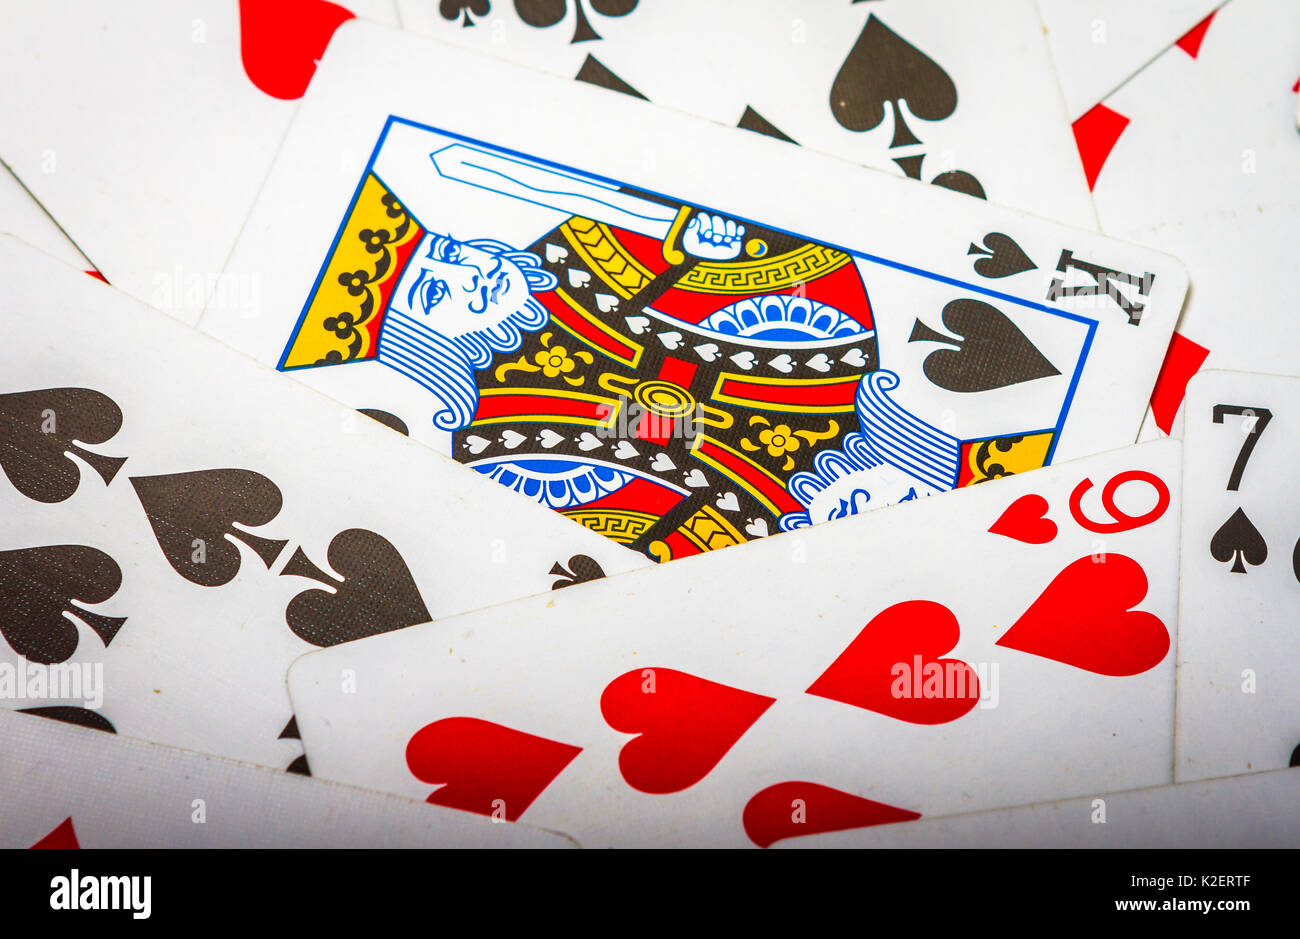 cards - Stock Image